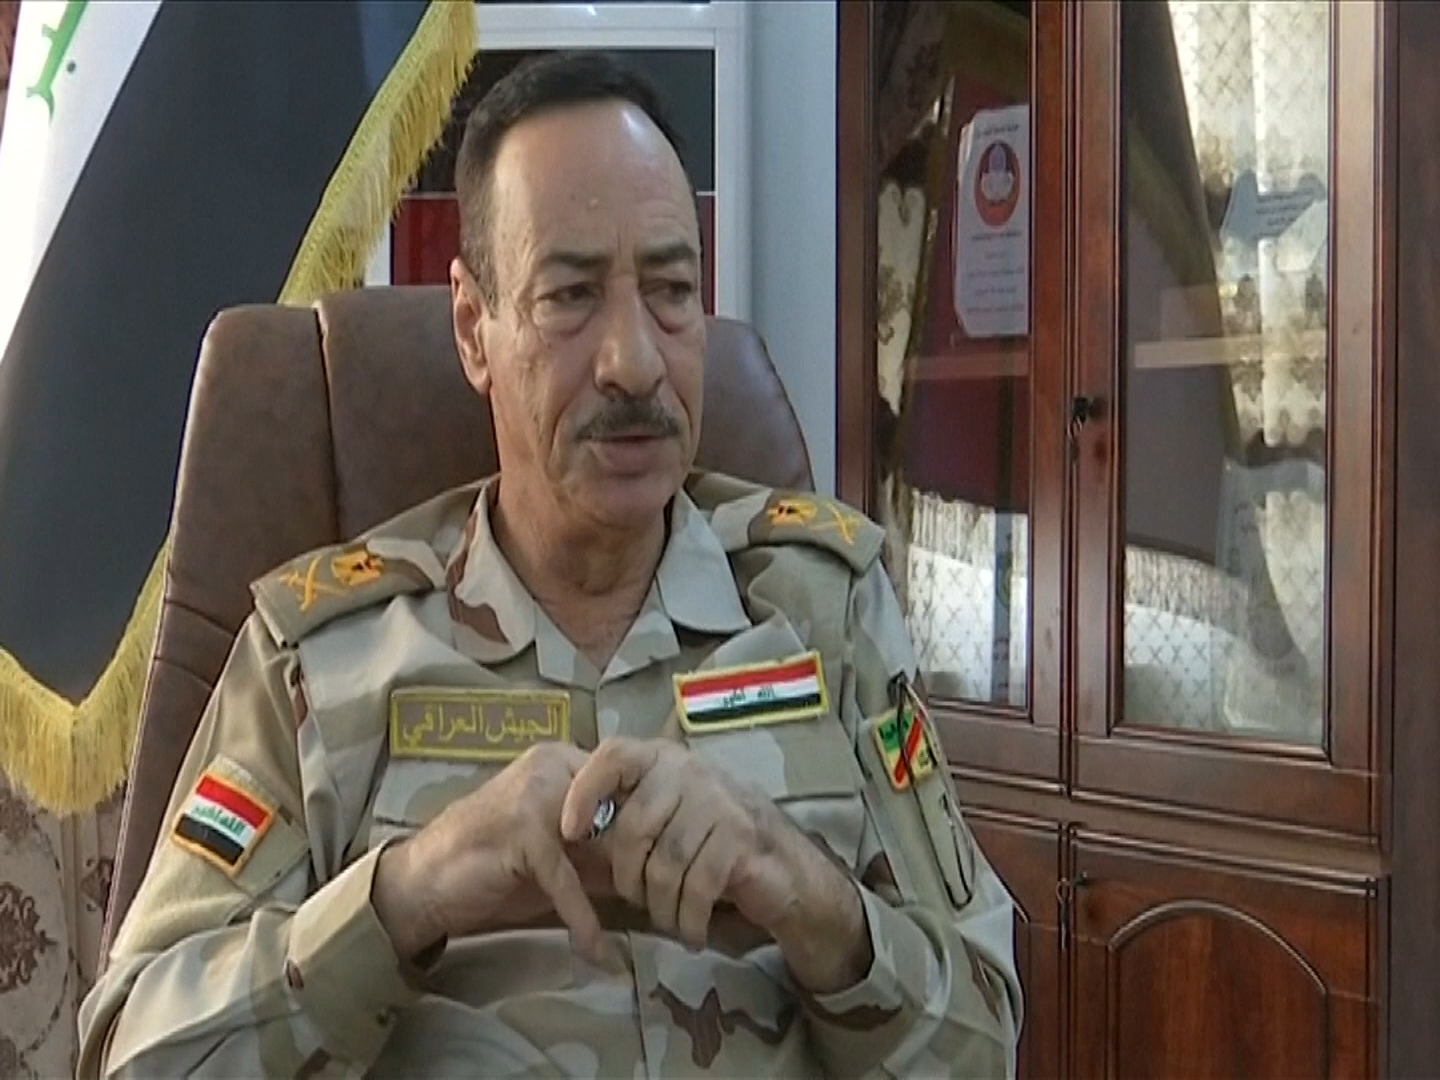 iraqi-general-claims-isis-are-extremely-worn-out-in-tal-afar-ahead-of-key-battle